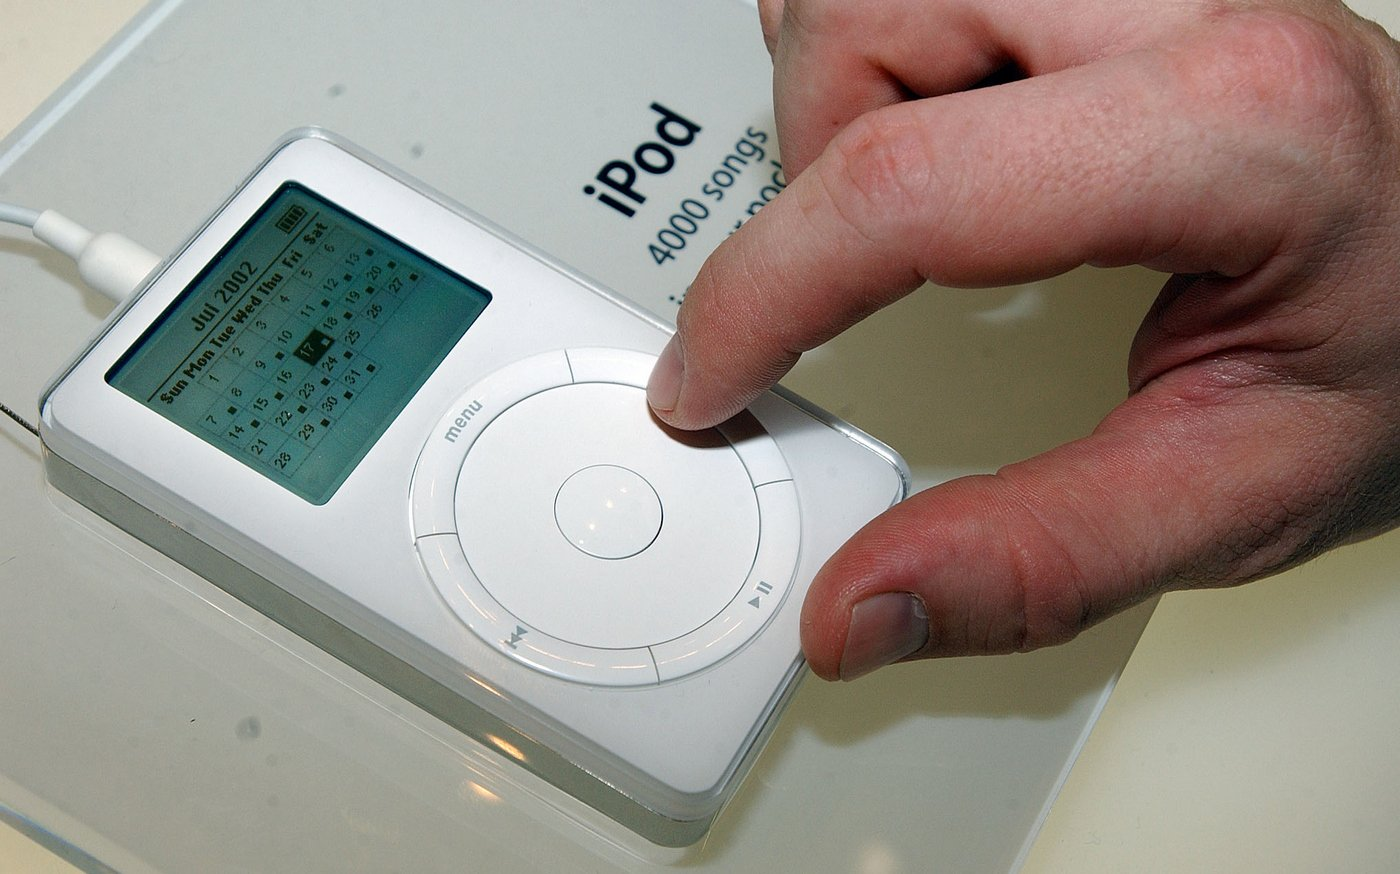 This original iPod preserved in its original packaging can be yours for $20,000